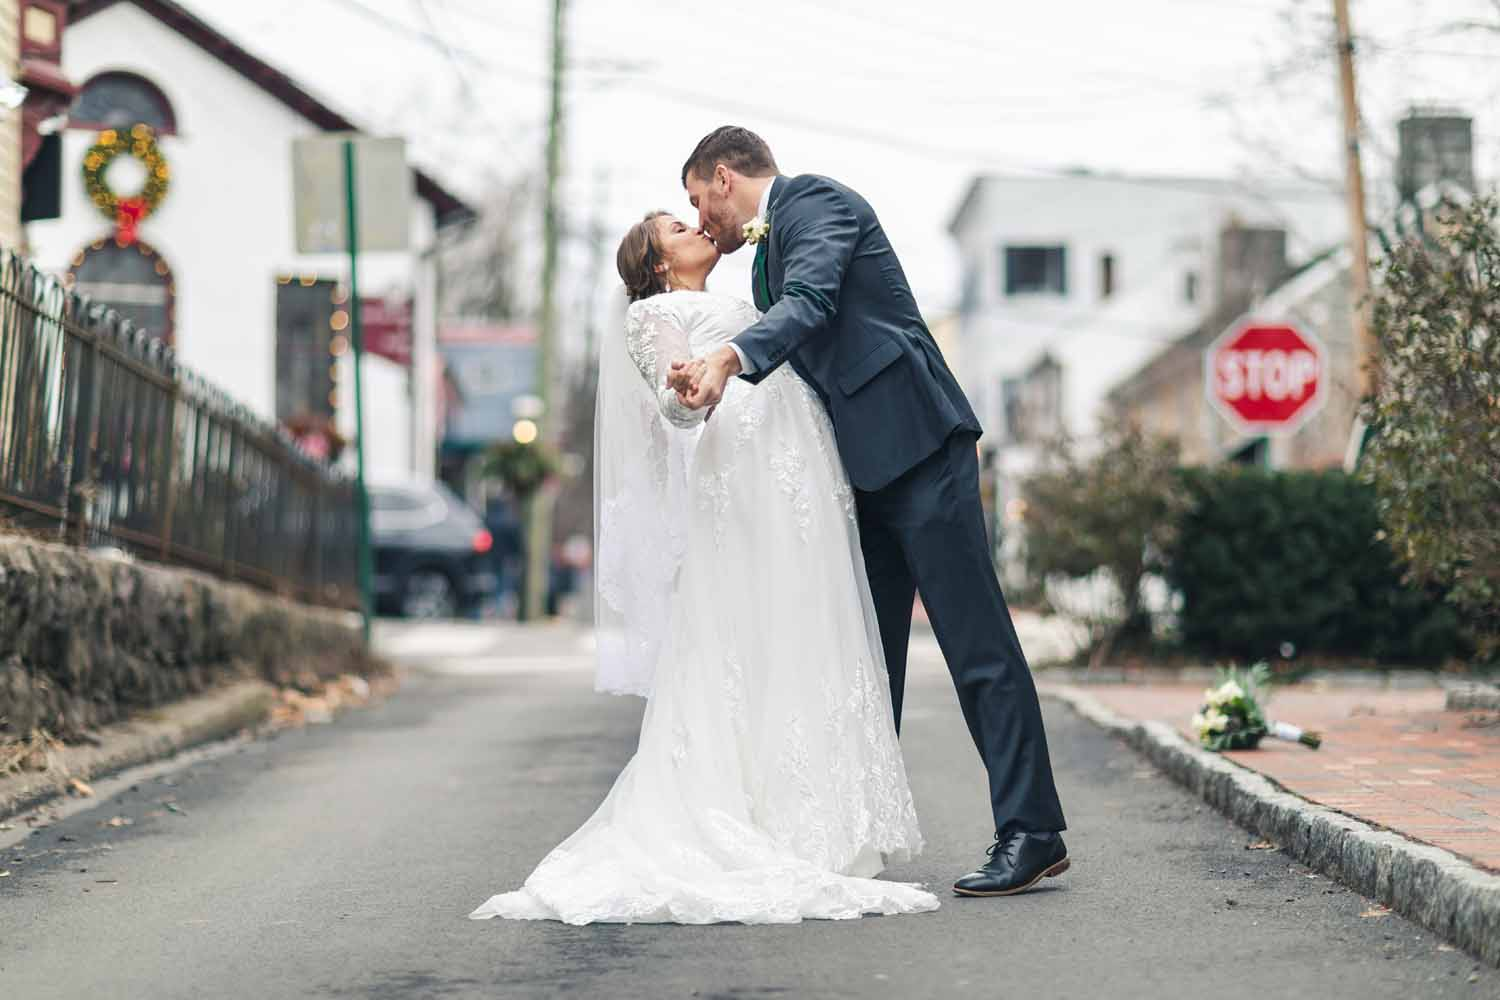 Grooms dips and kisses bride in a street on New Hope